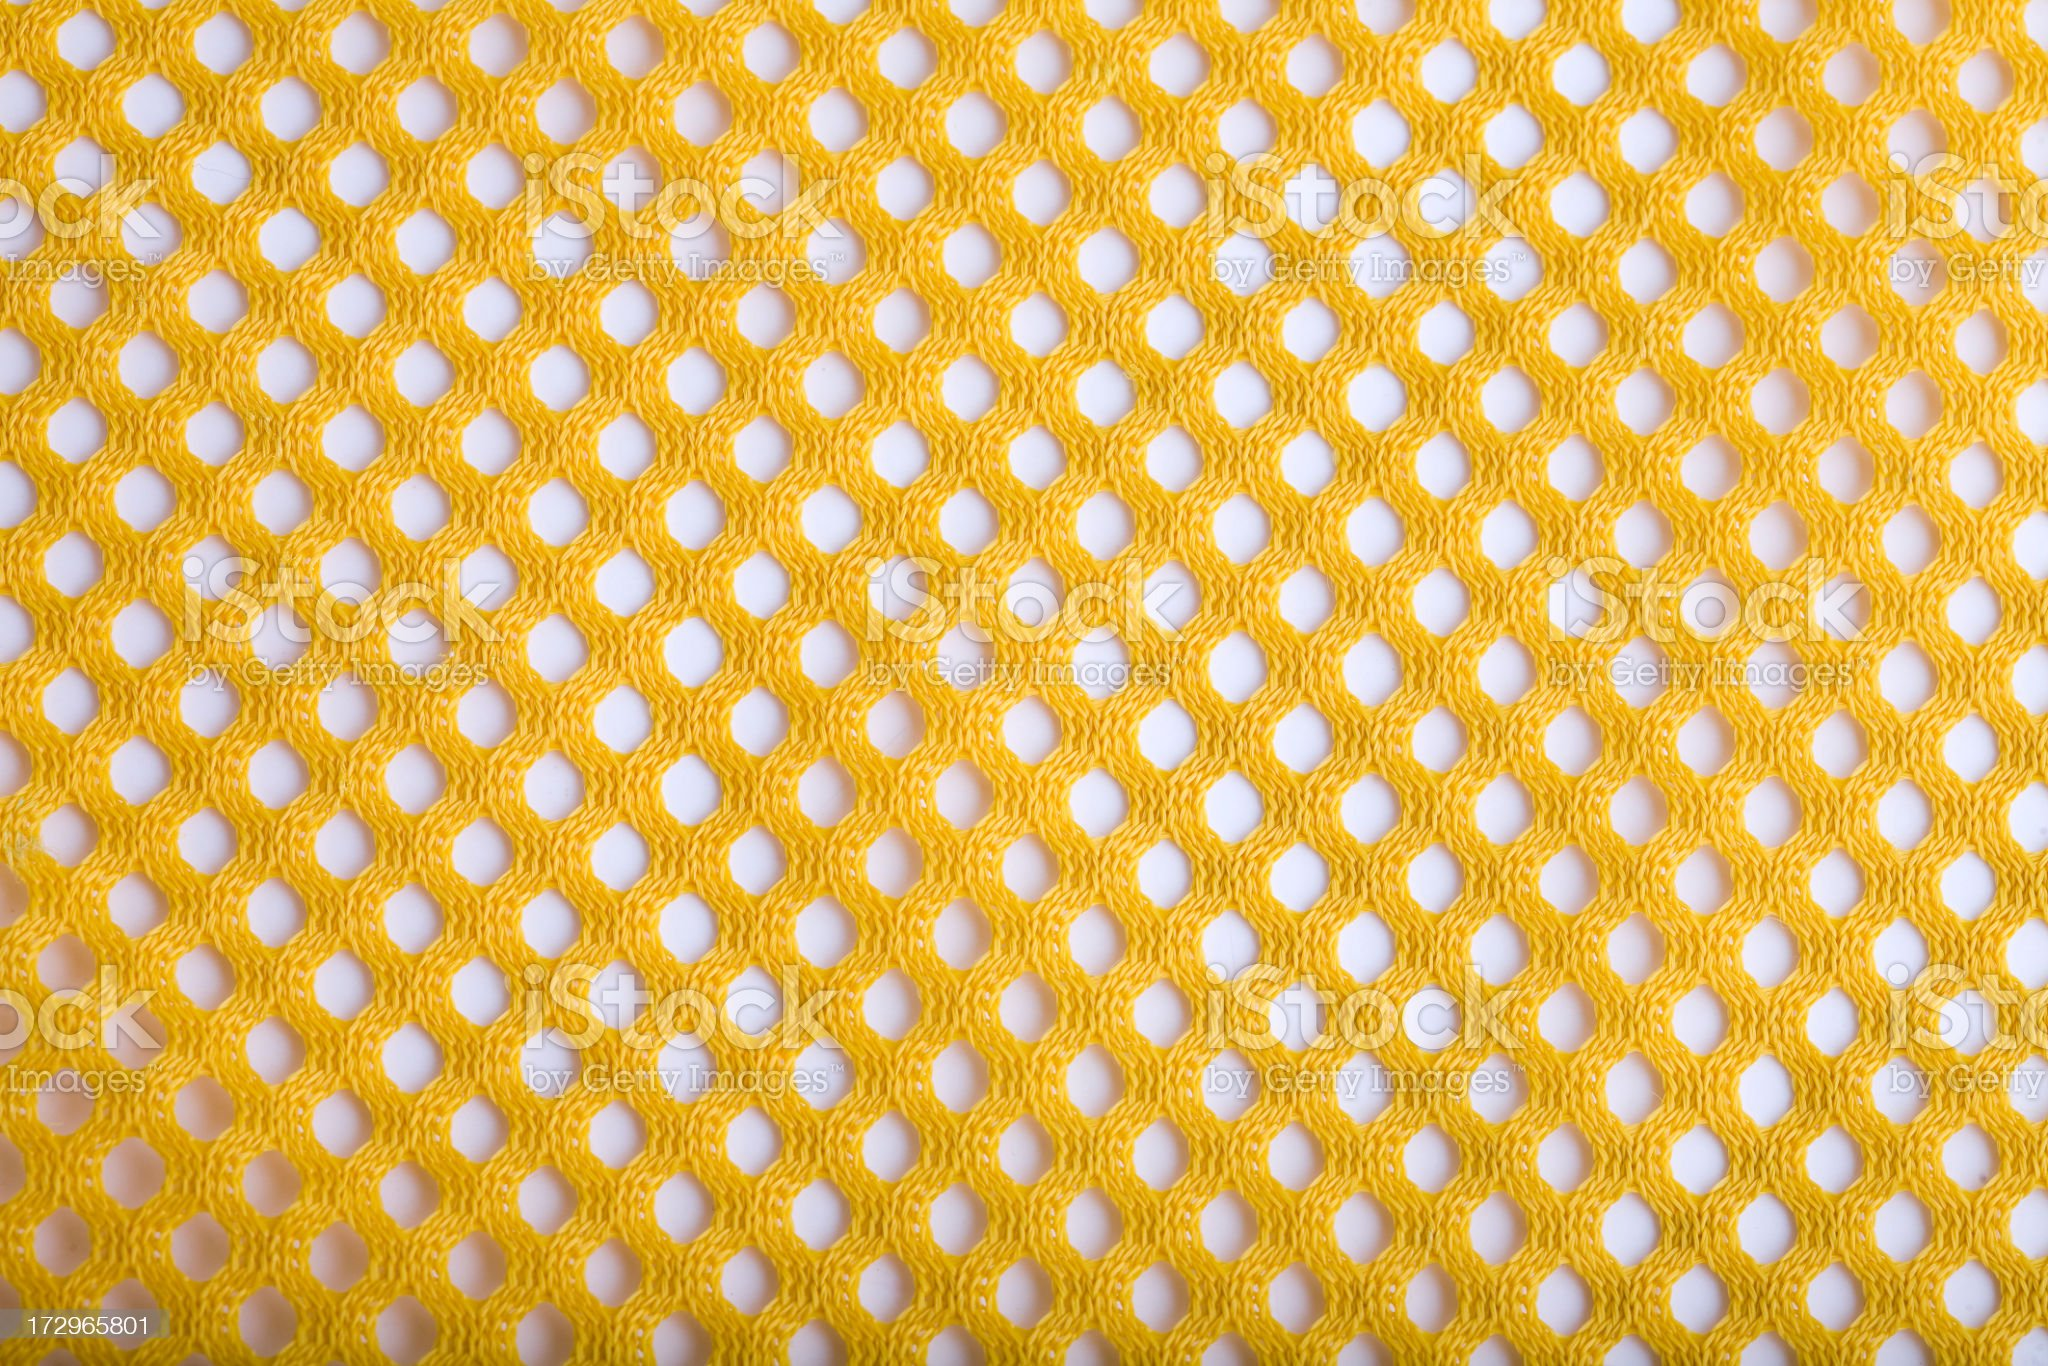 Yellow Jersey Background royalty-free stock photo